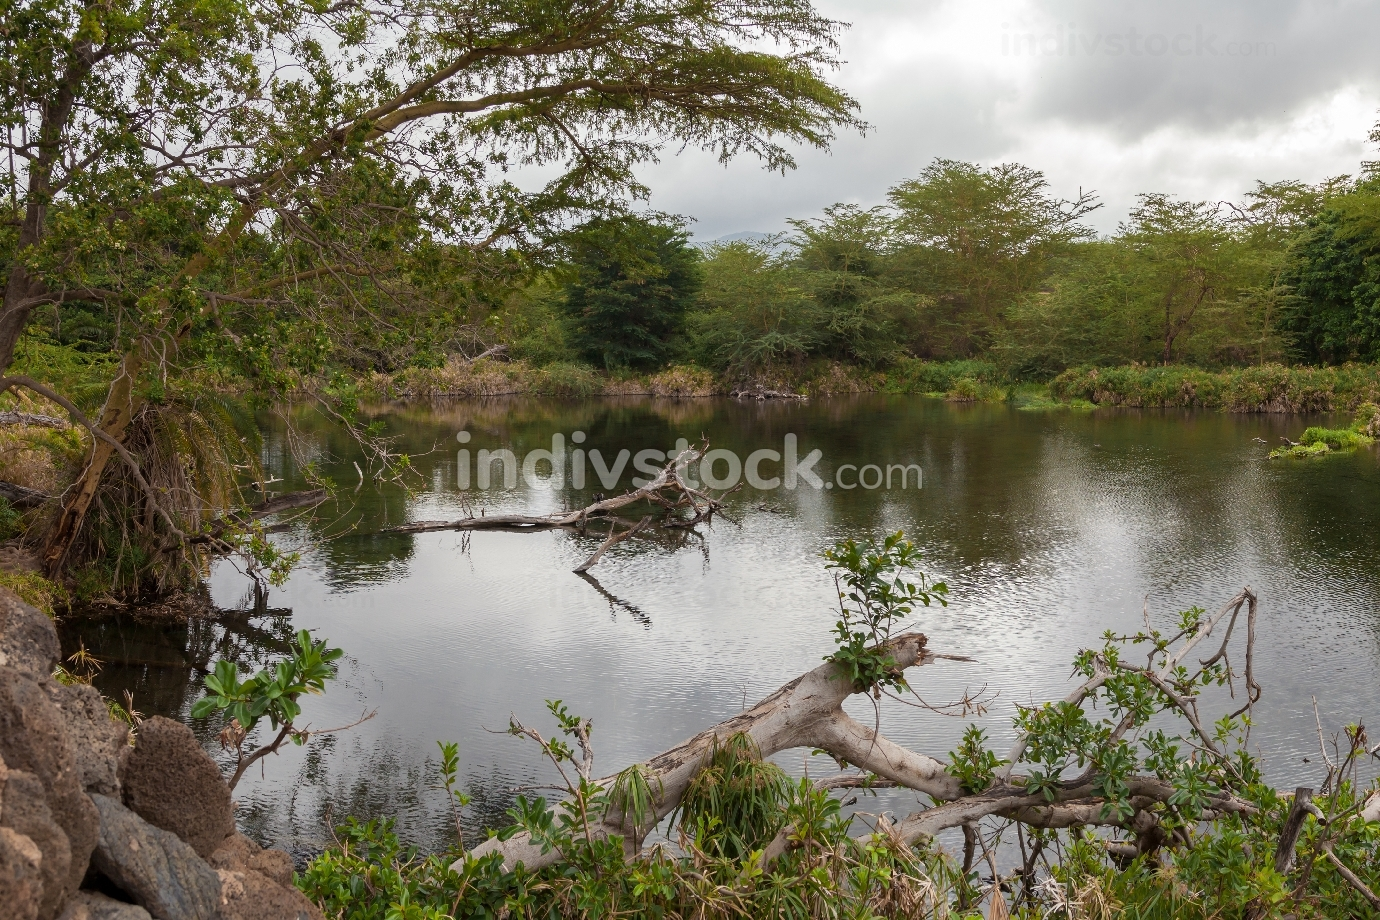 Landscape of Kenya, Mzima Springs with a lot of plant